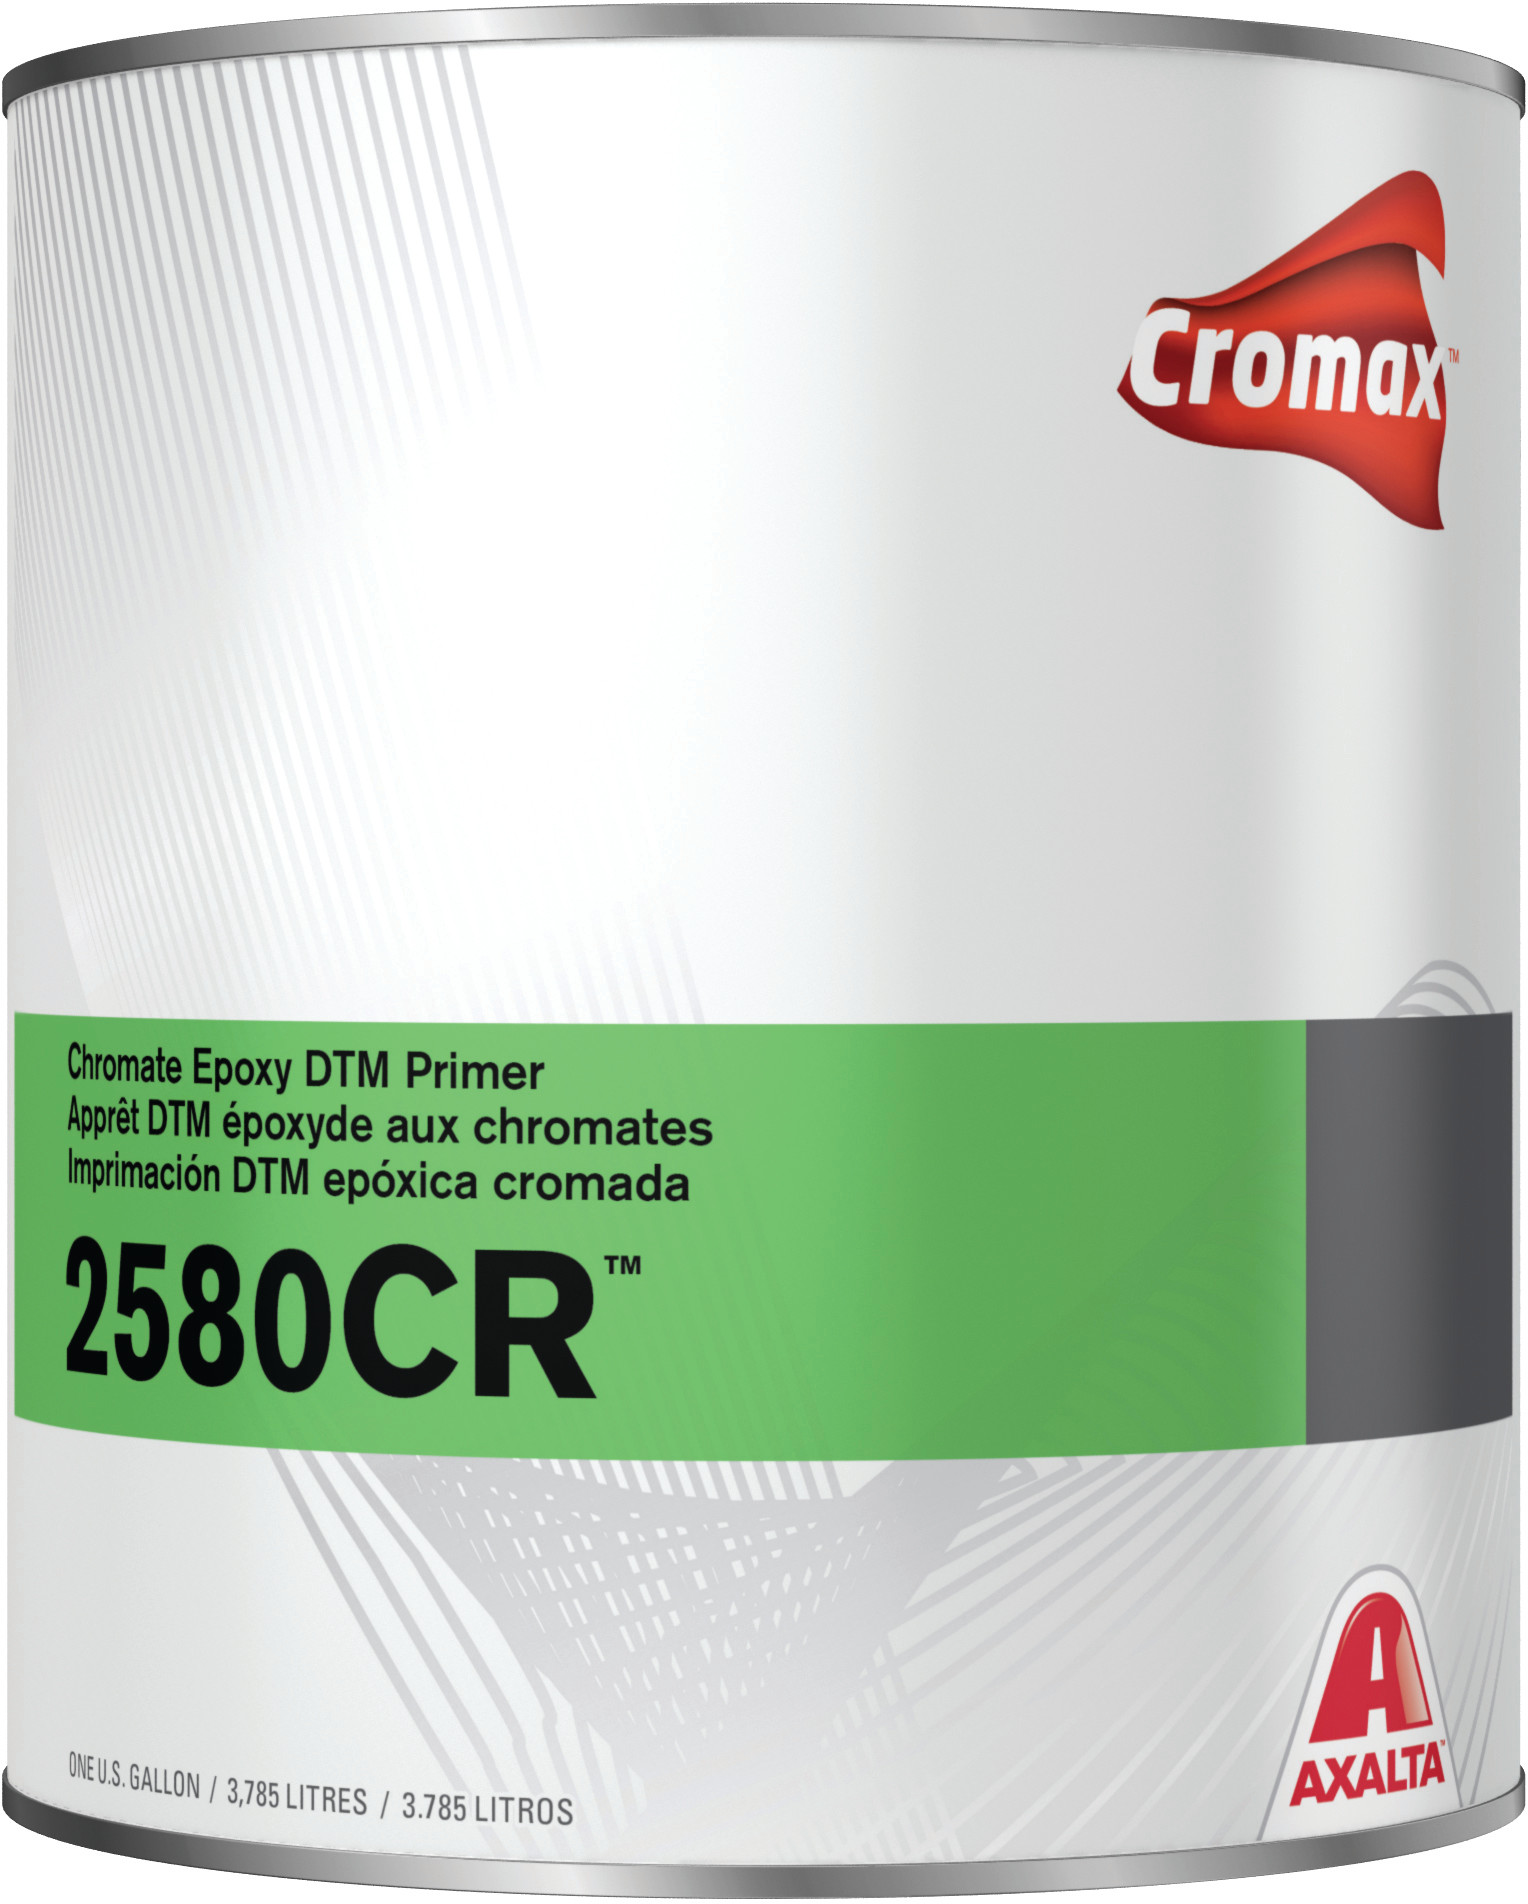 Cromax 2580cr Chromate Epoxy Primer Gallon